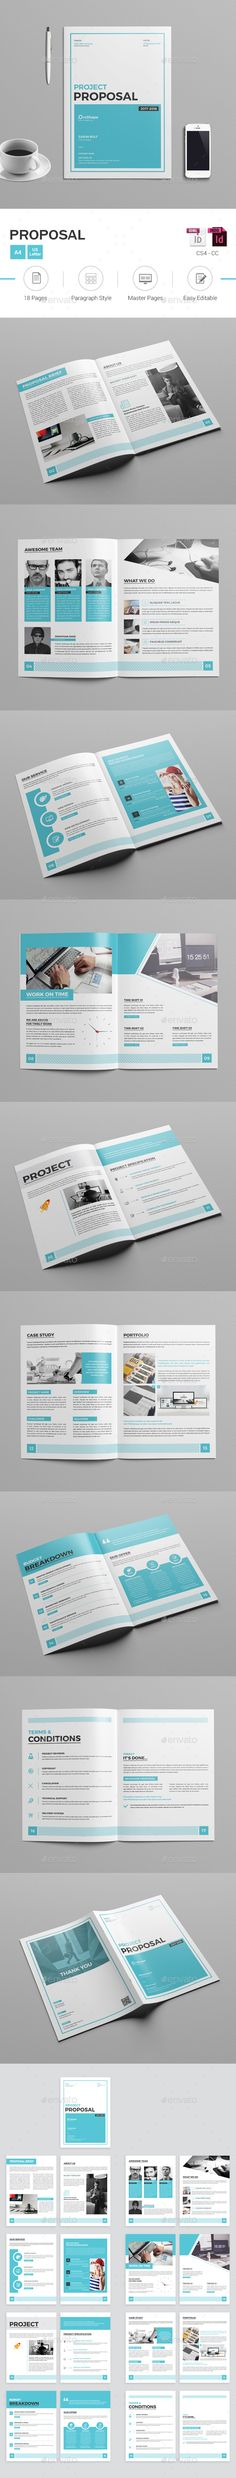 Proposal - free event proposal template download